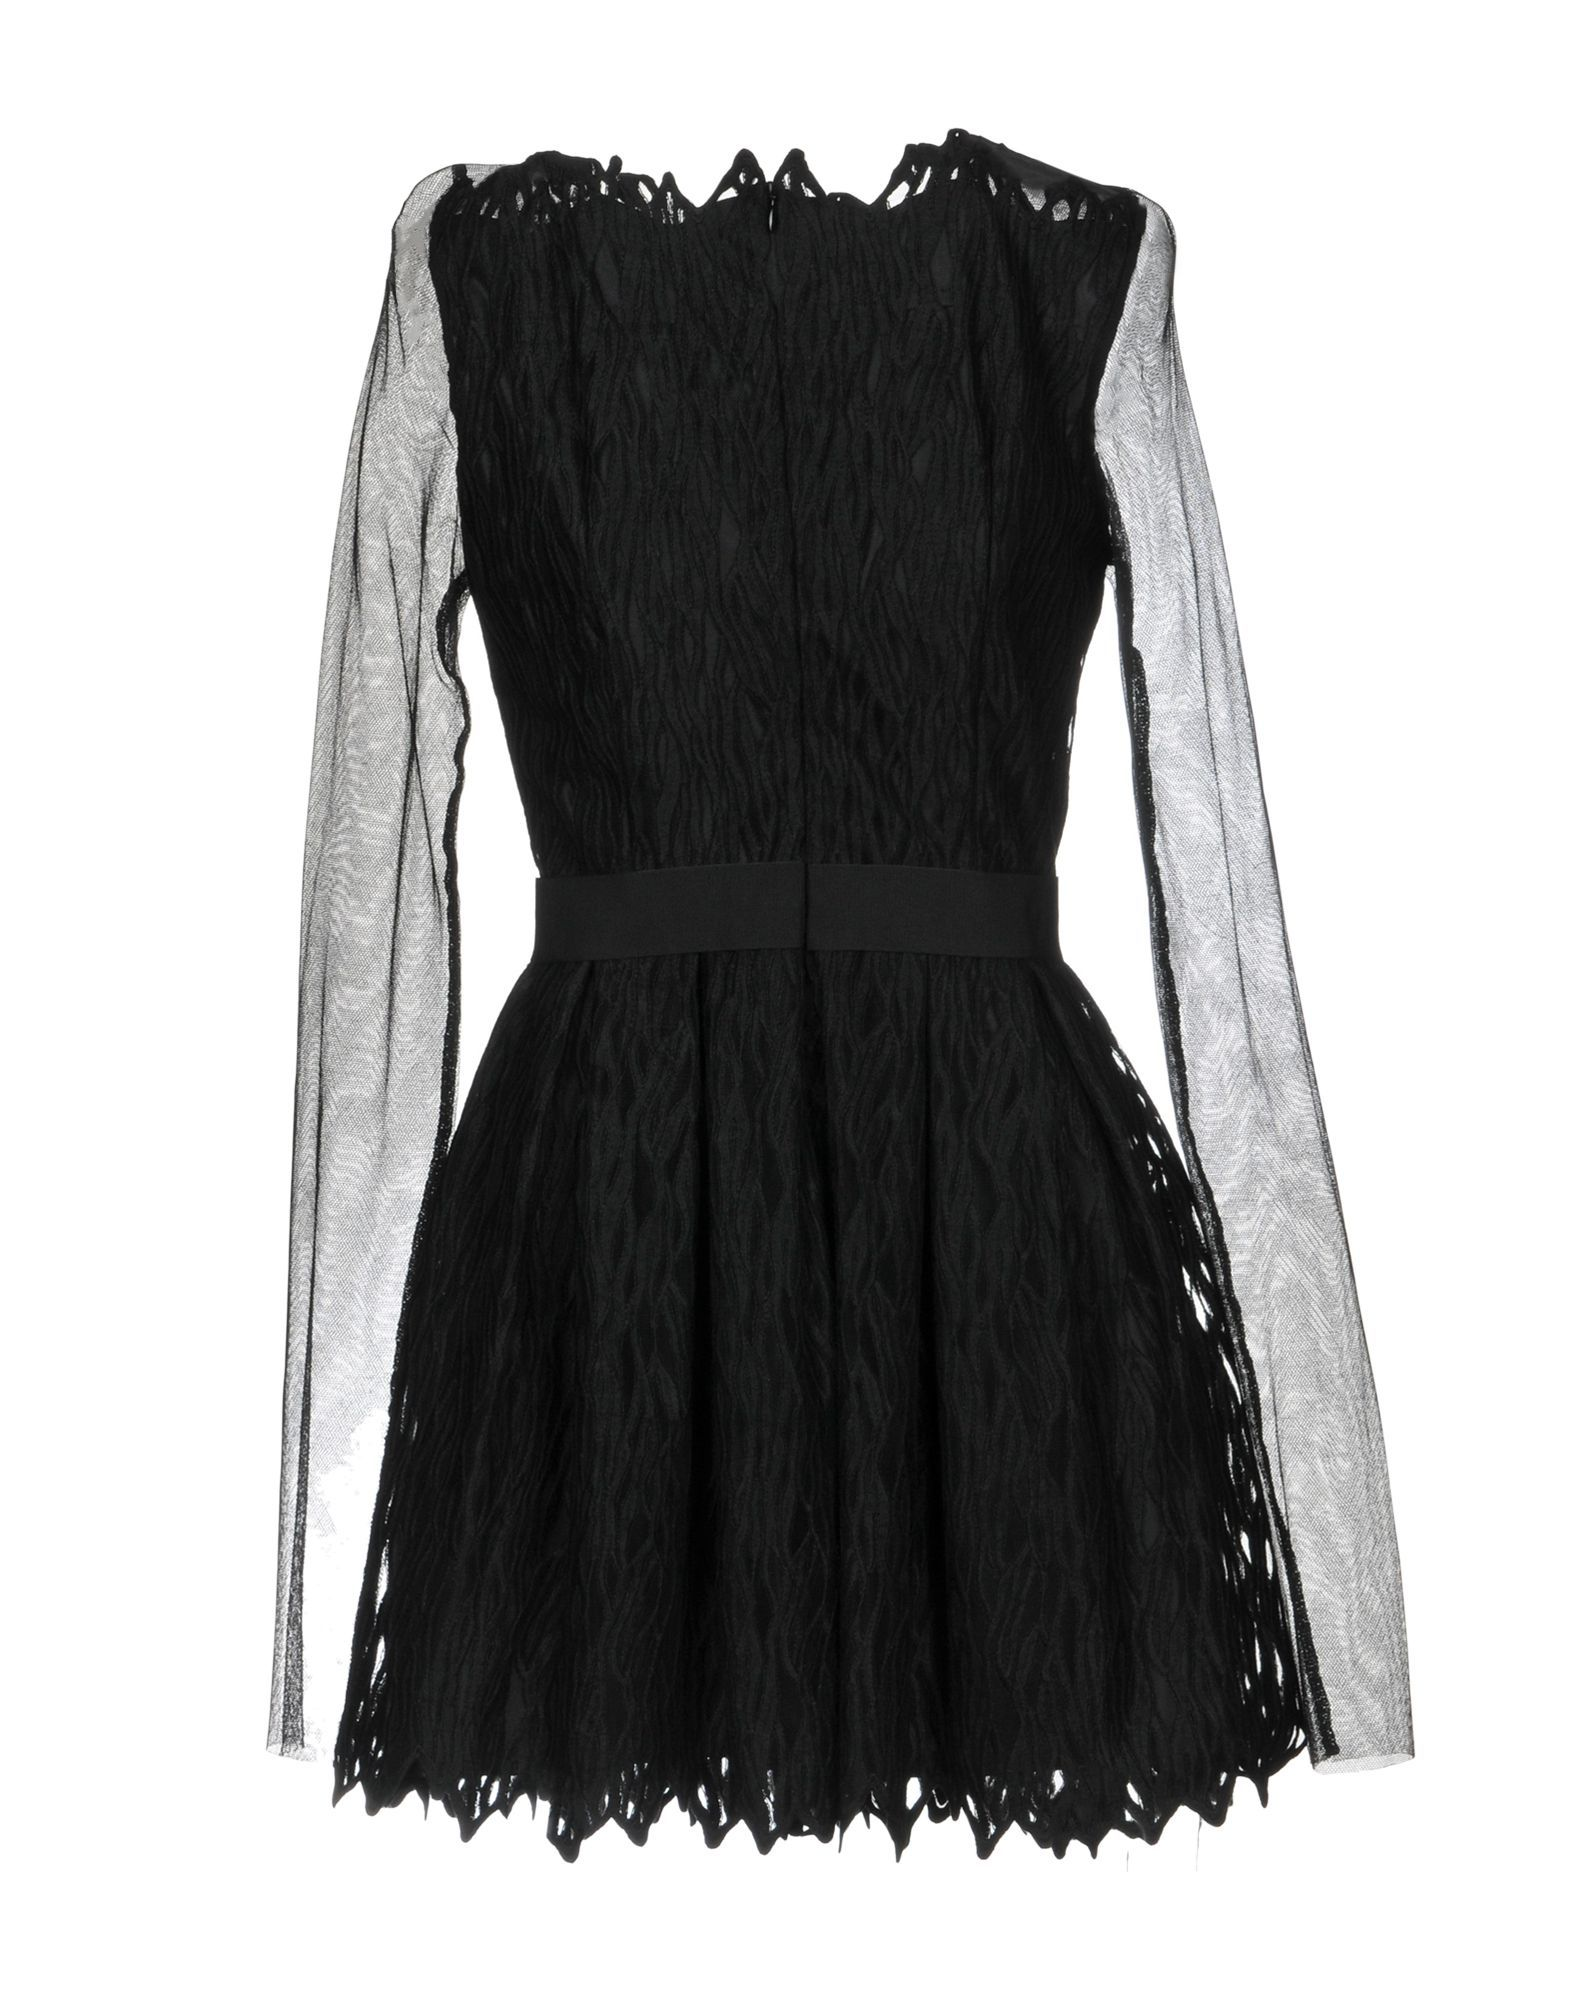 Plein Sud Black Sheer Sleeve Dress